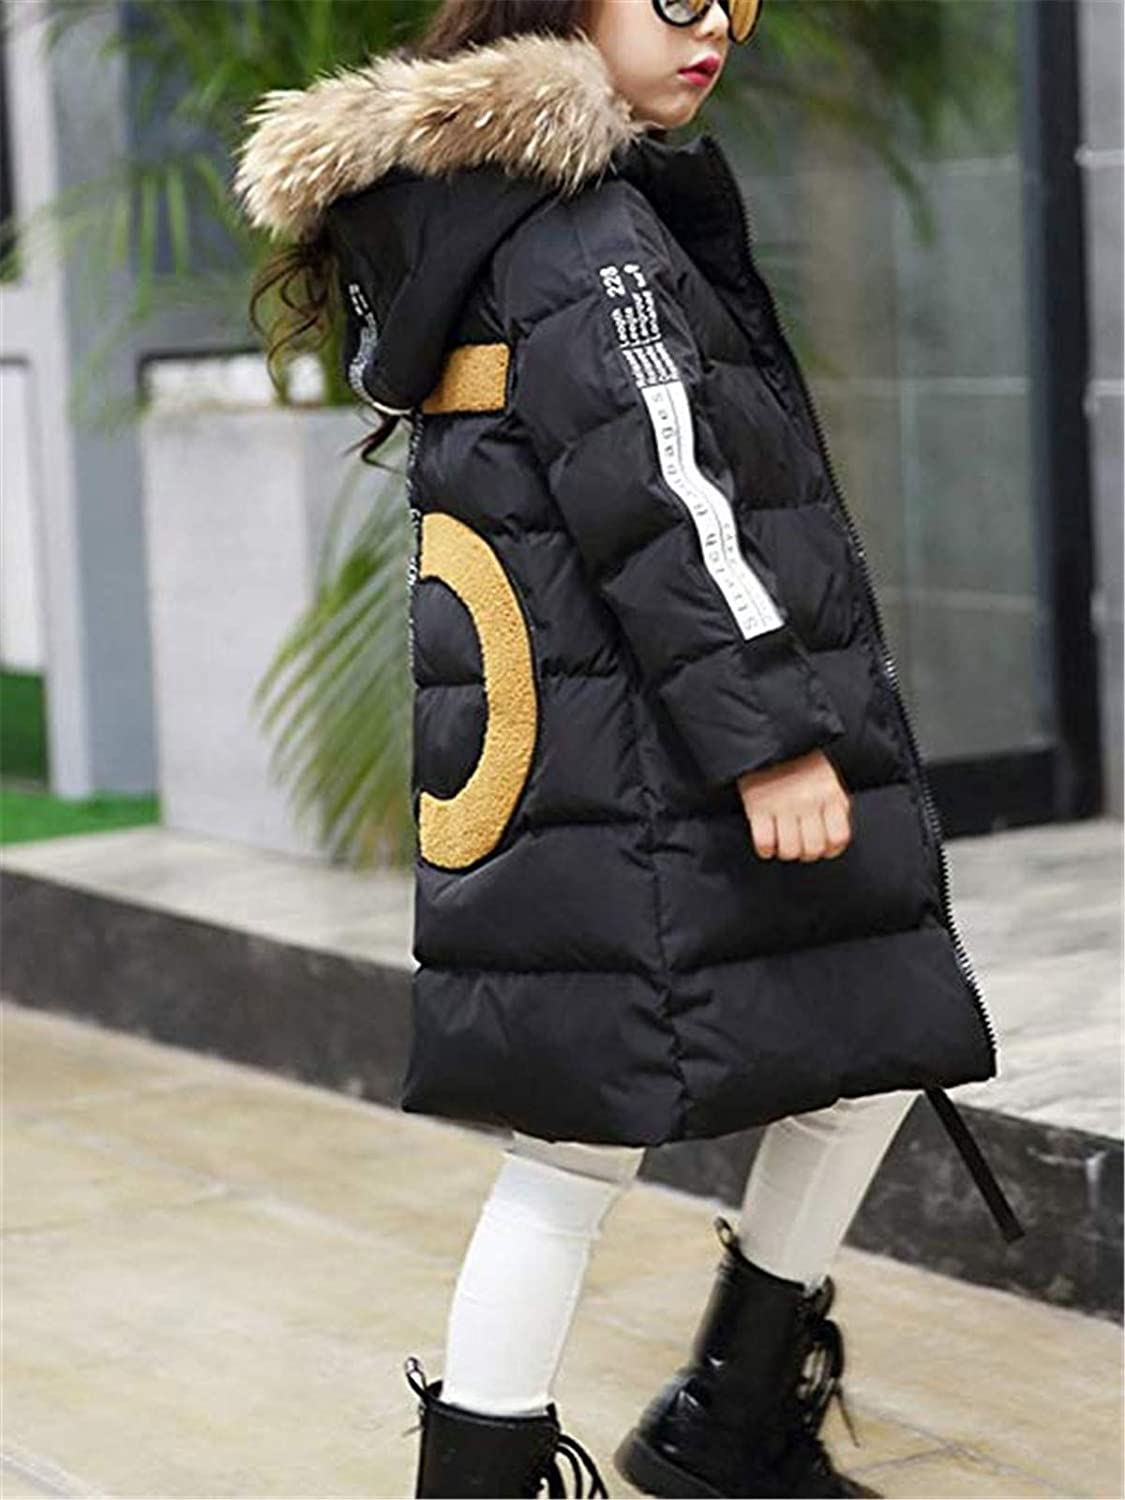 Hot 2018 Girls Winter New Cotton Jackets Girls Fashion Fur Collar Letters Coats Girl Thickening Hooded Warm Jacket Kids Clothes